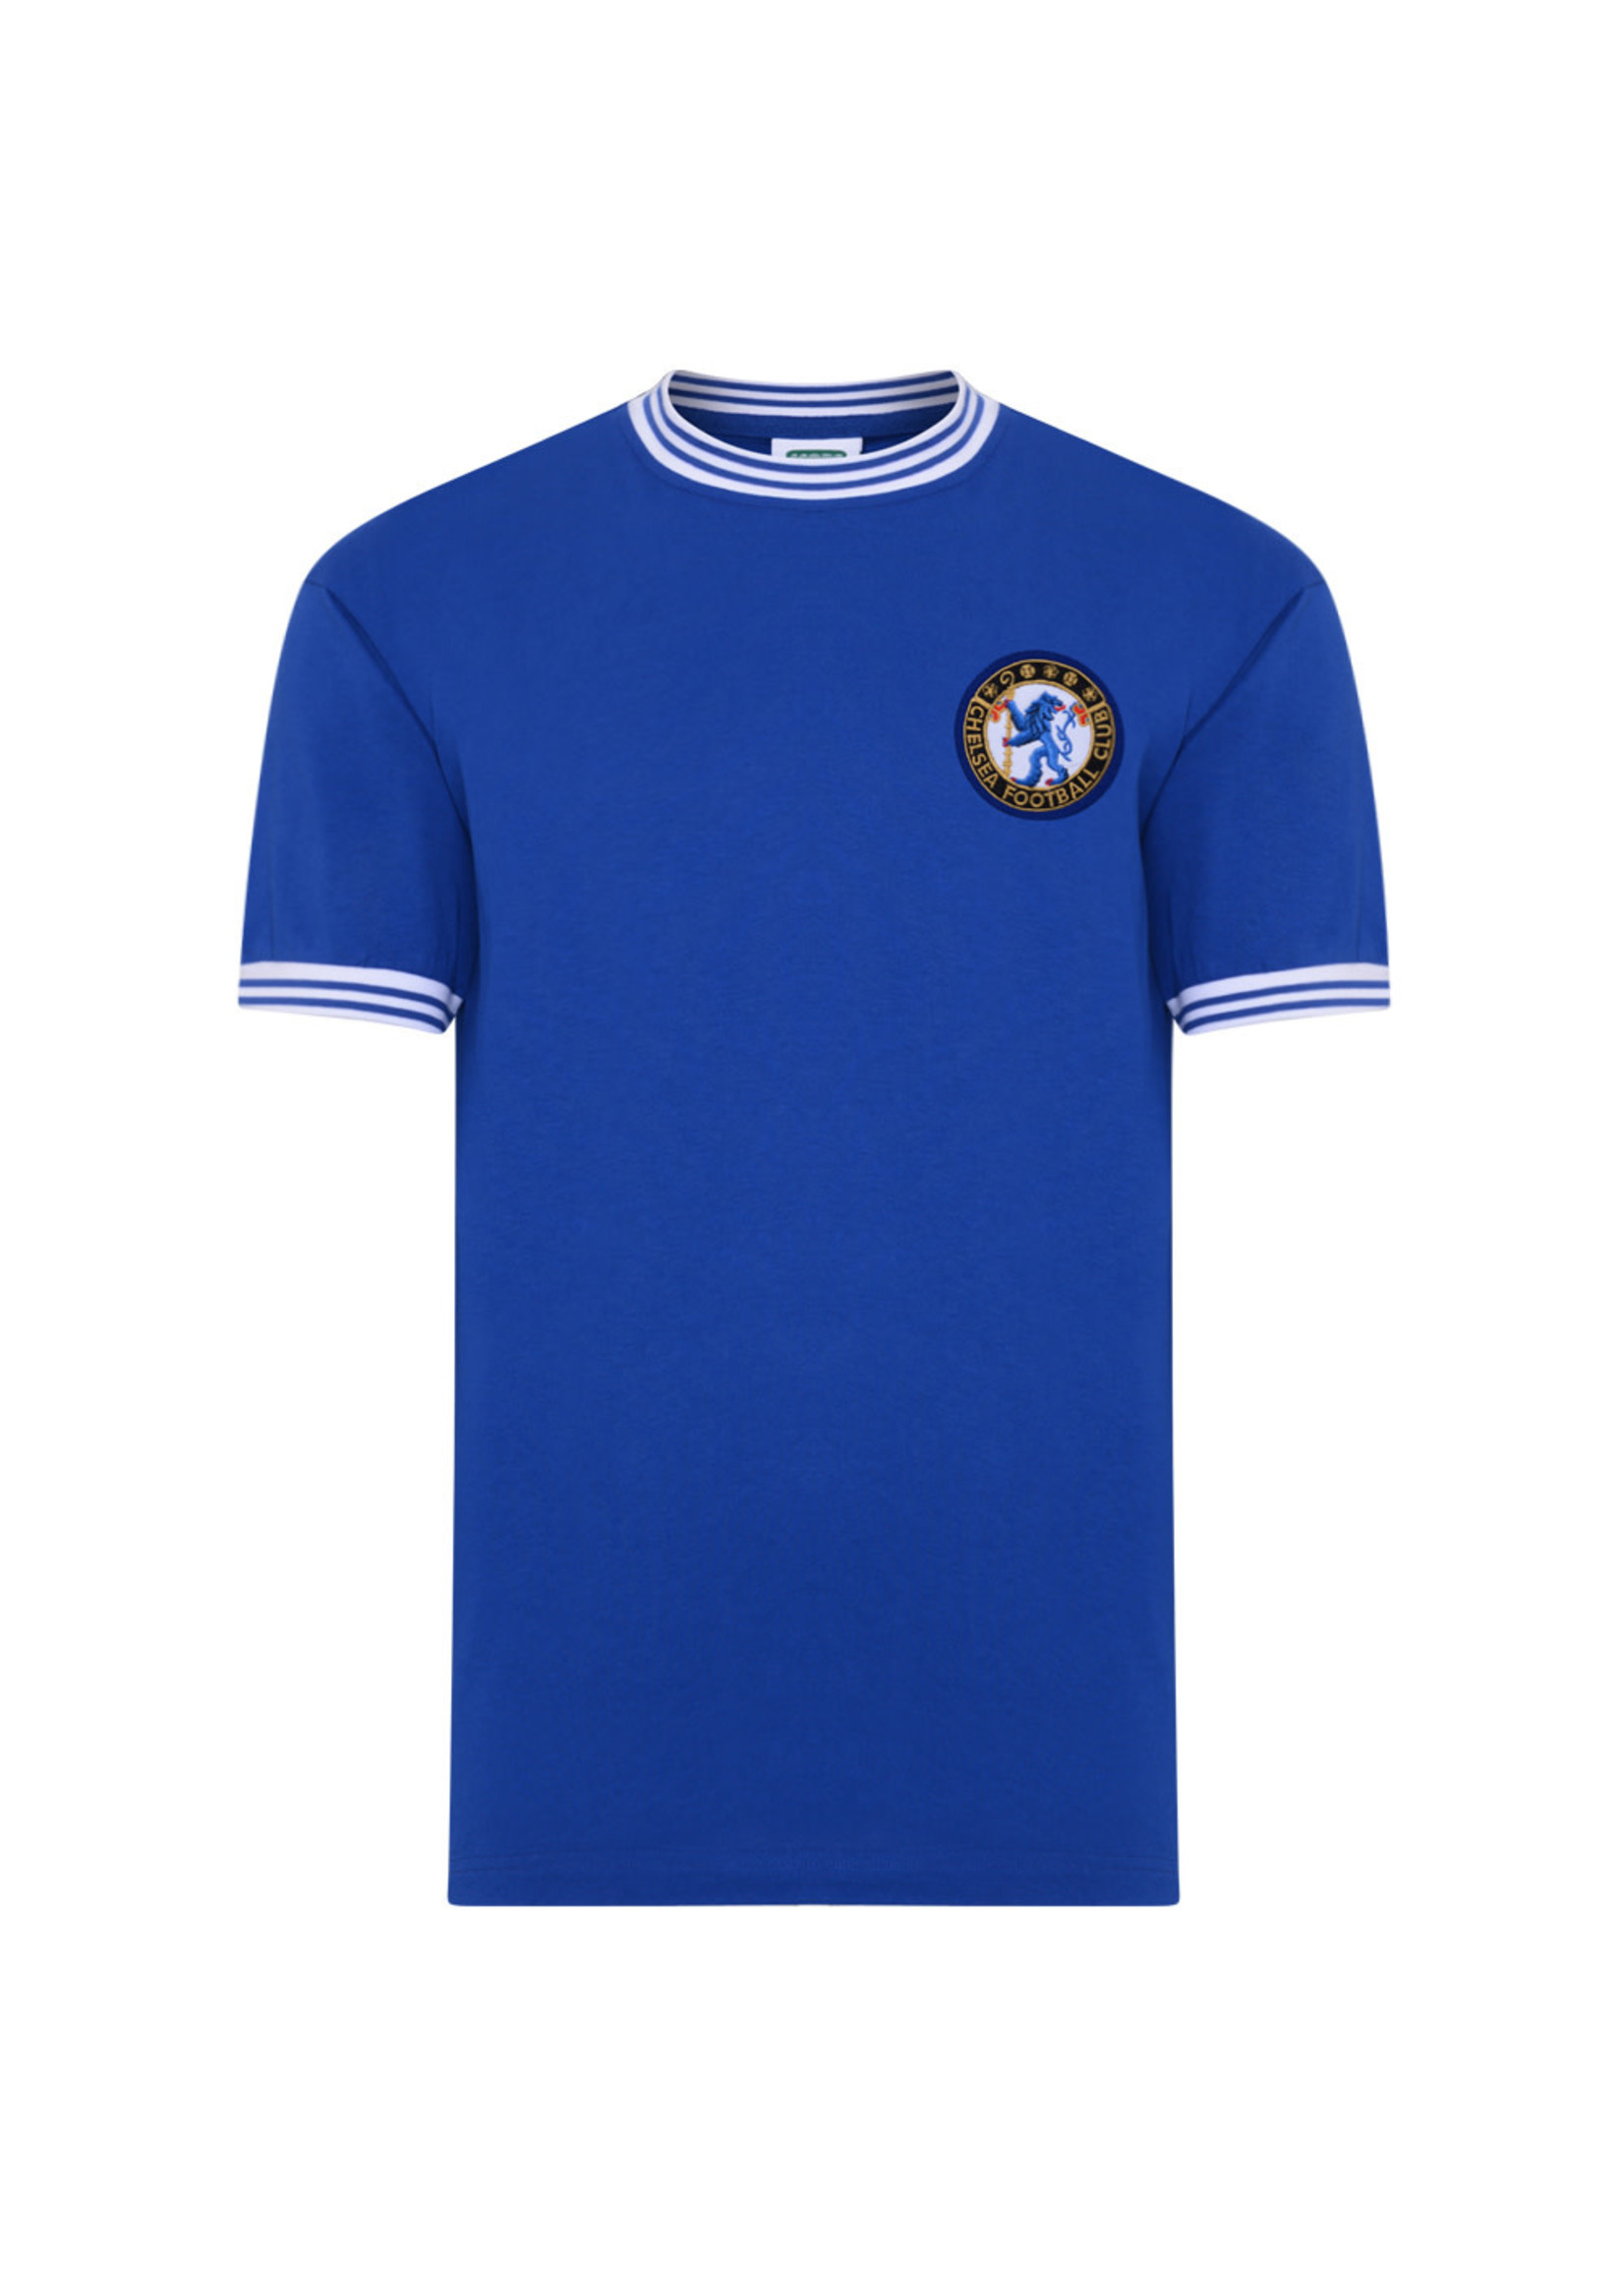 Chelsea Icon Jersey - 1963 Retro Edition